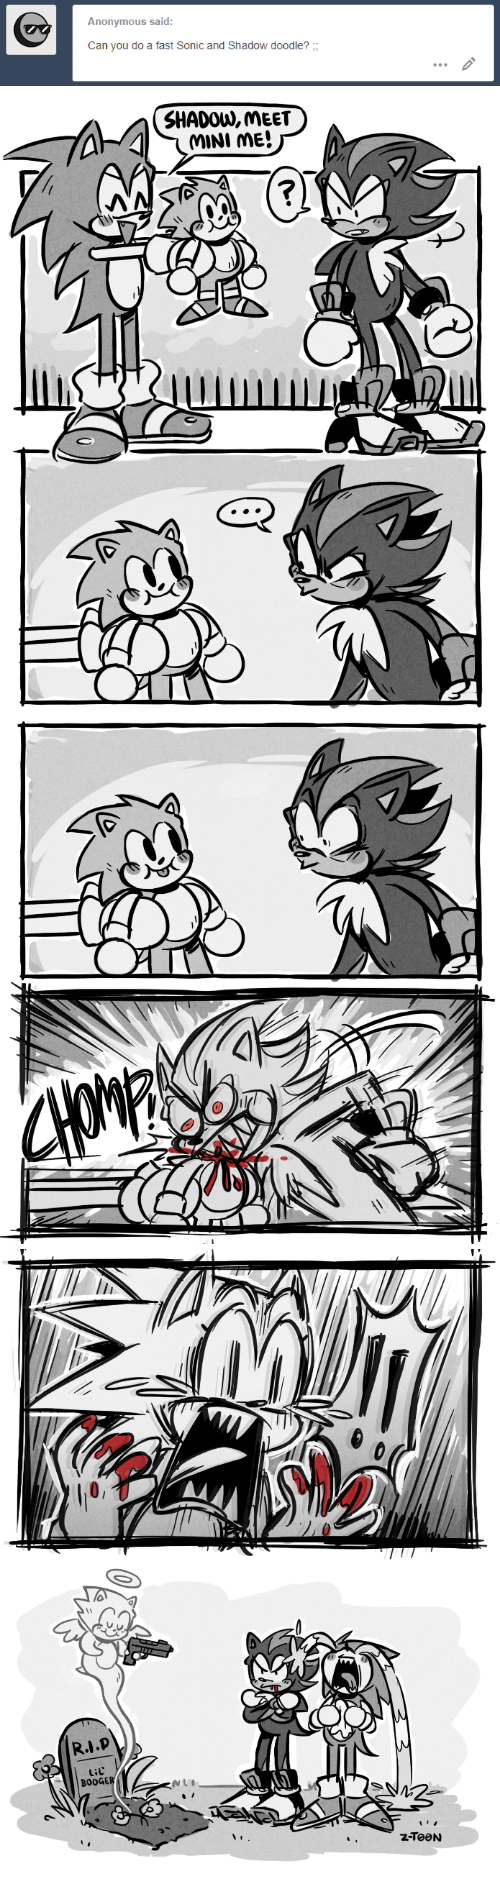 Anonymous, Doodle, and Sonic: Anonymous said:  Can you do a fast Sonic and Shadow doodle?   SHADOW, MEET   Lil  BOOGE